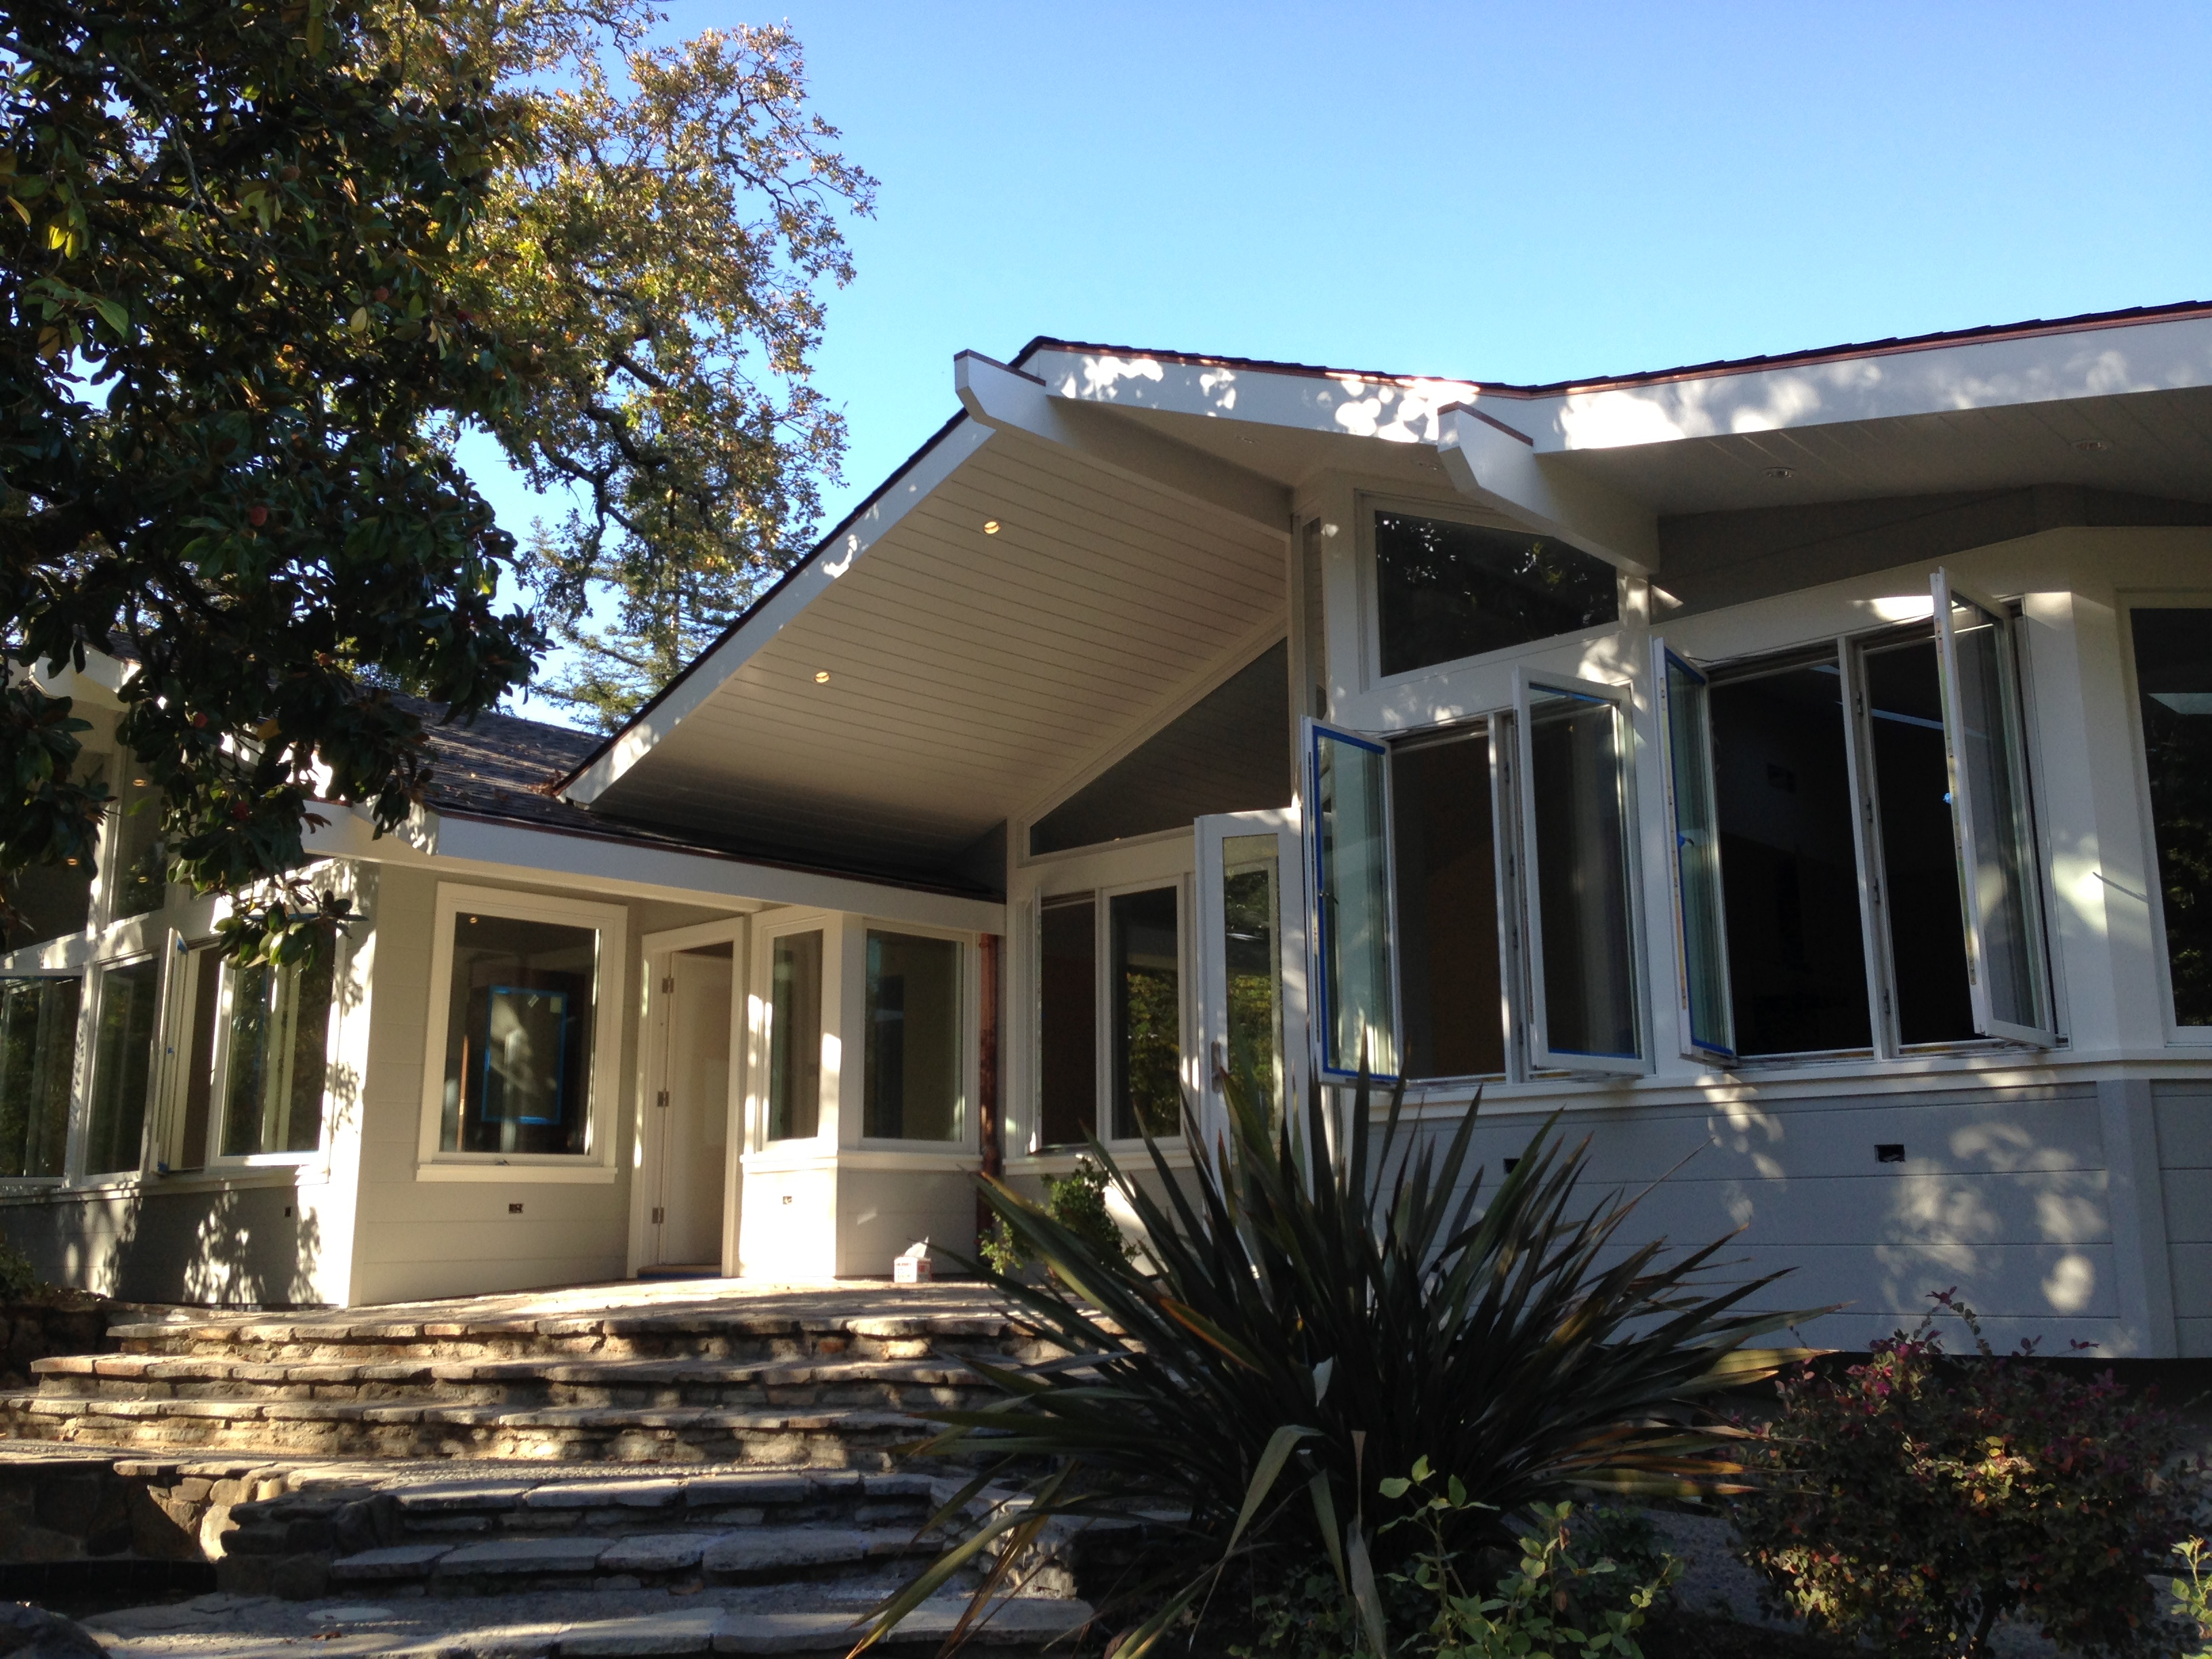 Marvin marin county windows and doors otg 16 ot glass for 16 window